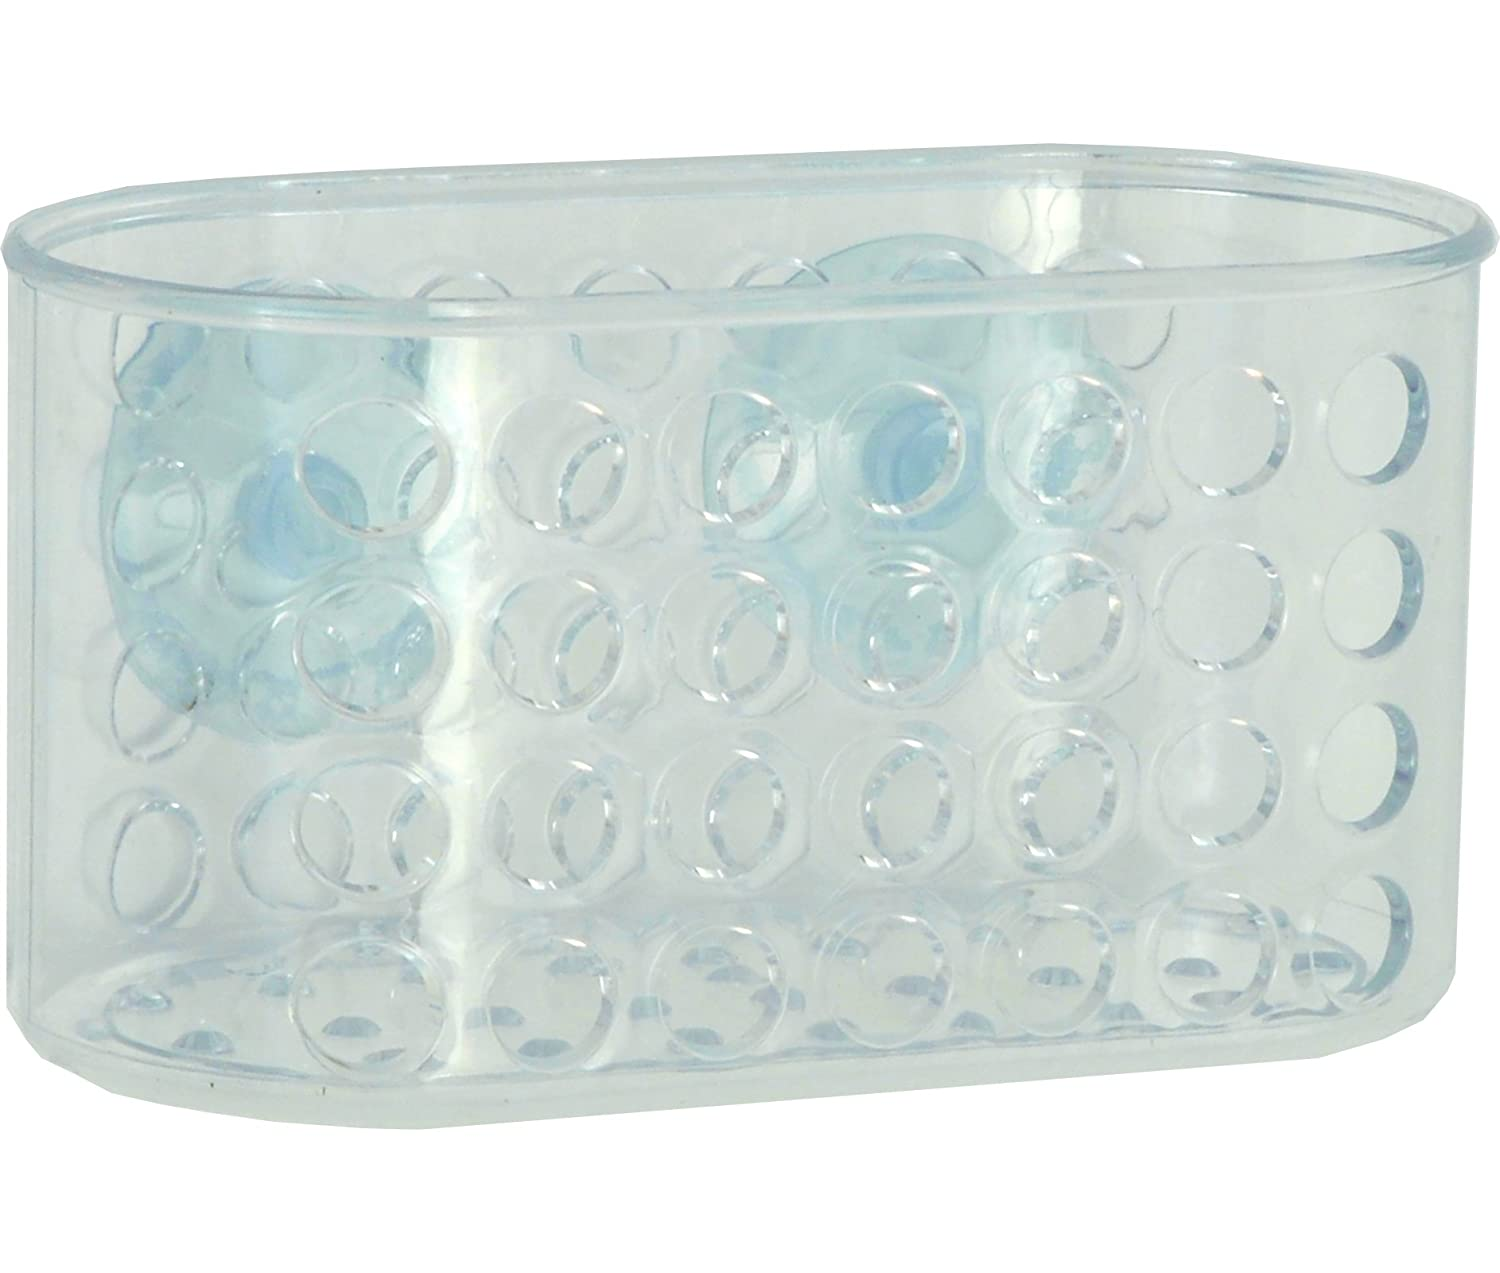 Amazon.com: LDR 168 1531 Exquisite Small Shower Basket with Two ...